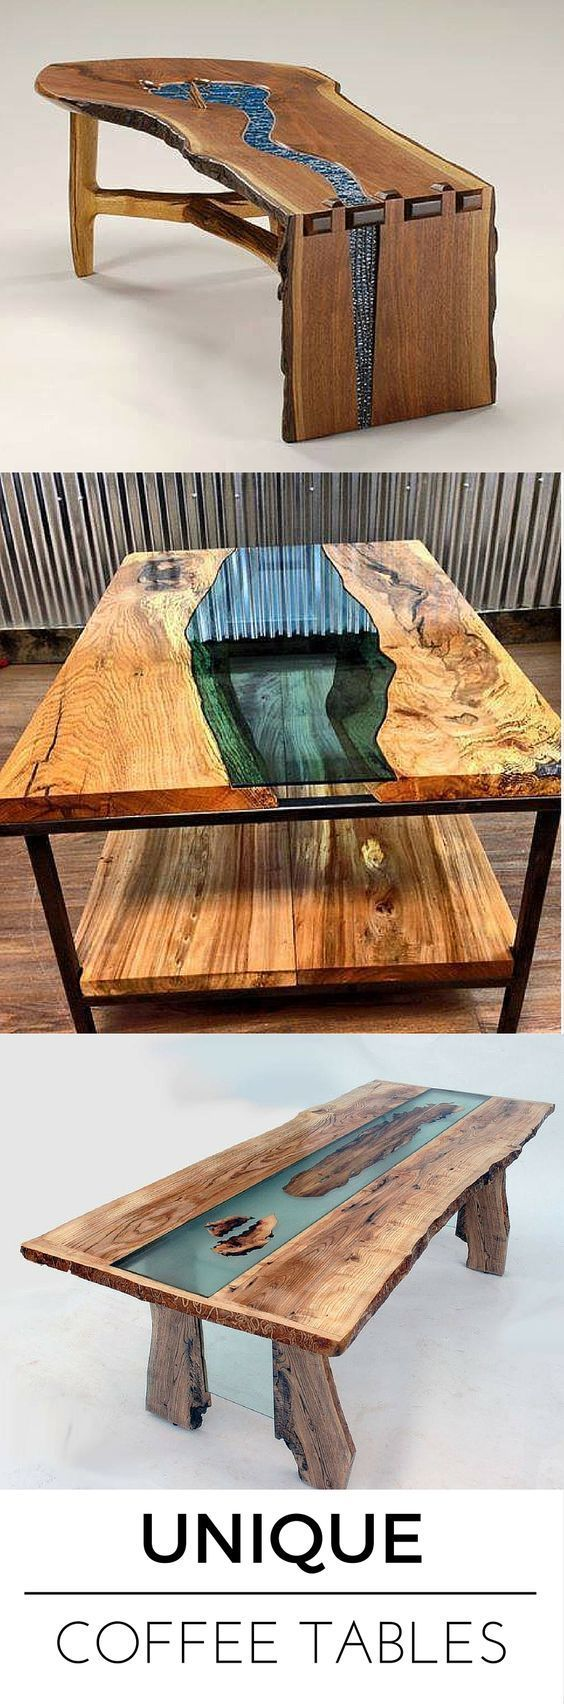 Interesting And Unique Coffee Tables Get Inspired Http Vid Staged Com Ivrs Unique Coffee Table Design Wooden Coffee Table Rustic Coffee Tables